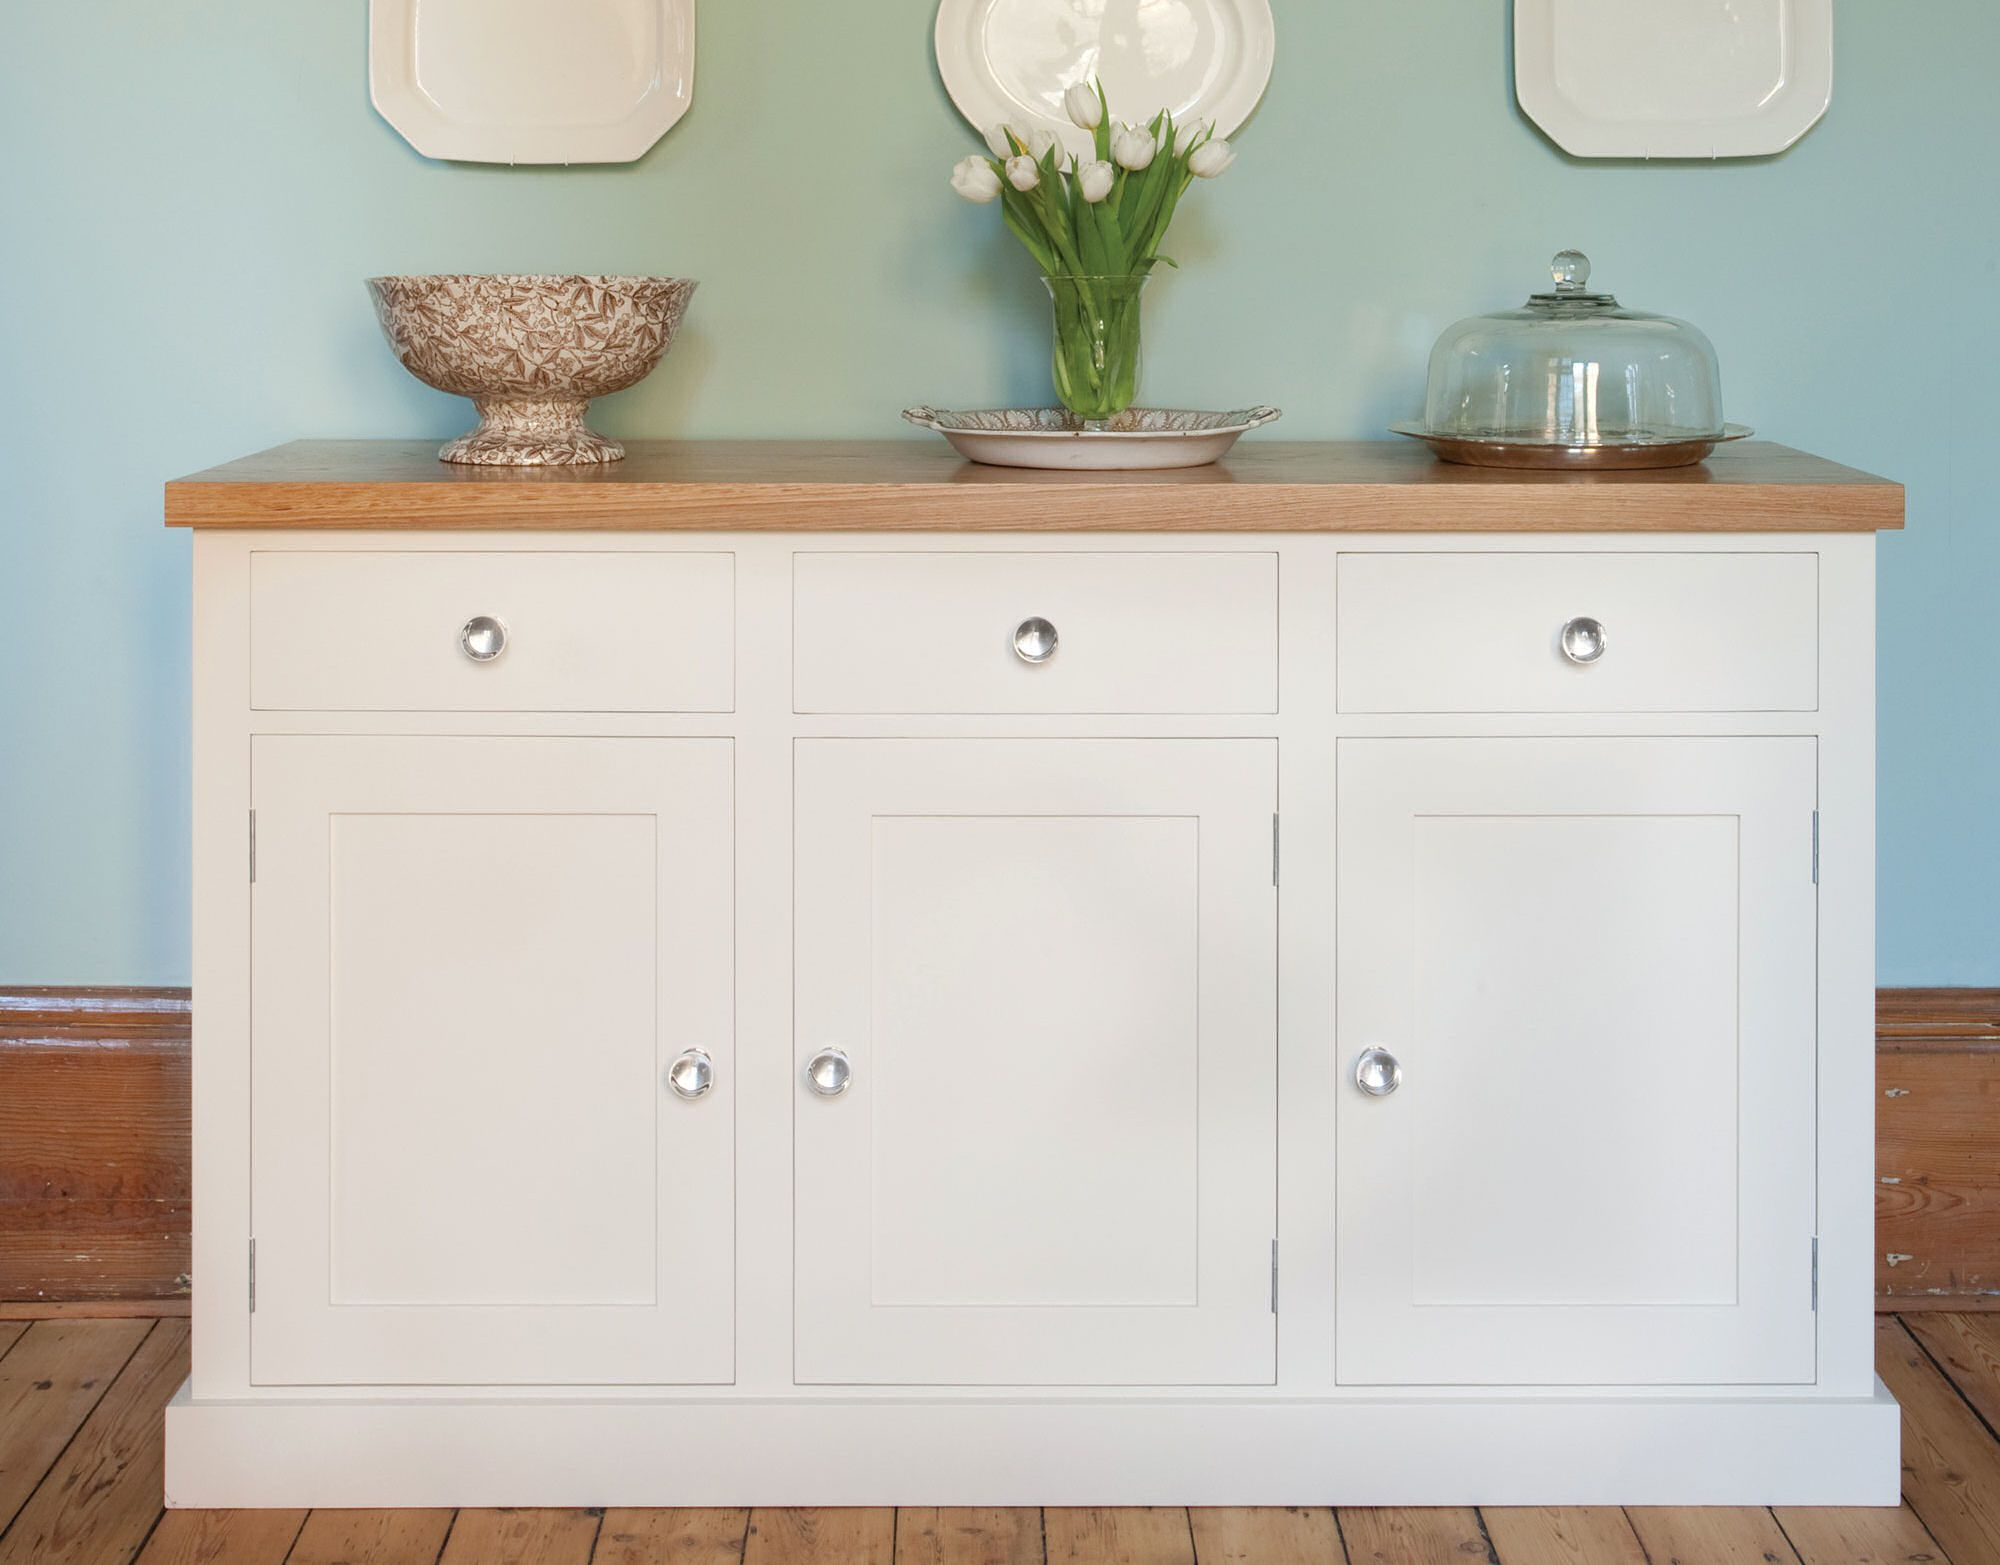 Kitchen Dresser oak kitchen dresser Painted Kitchen Dressers And Fine Free Standing Furniture From The Kitchen Dresser Company Furniture The Morning Room The Butler